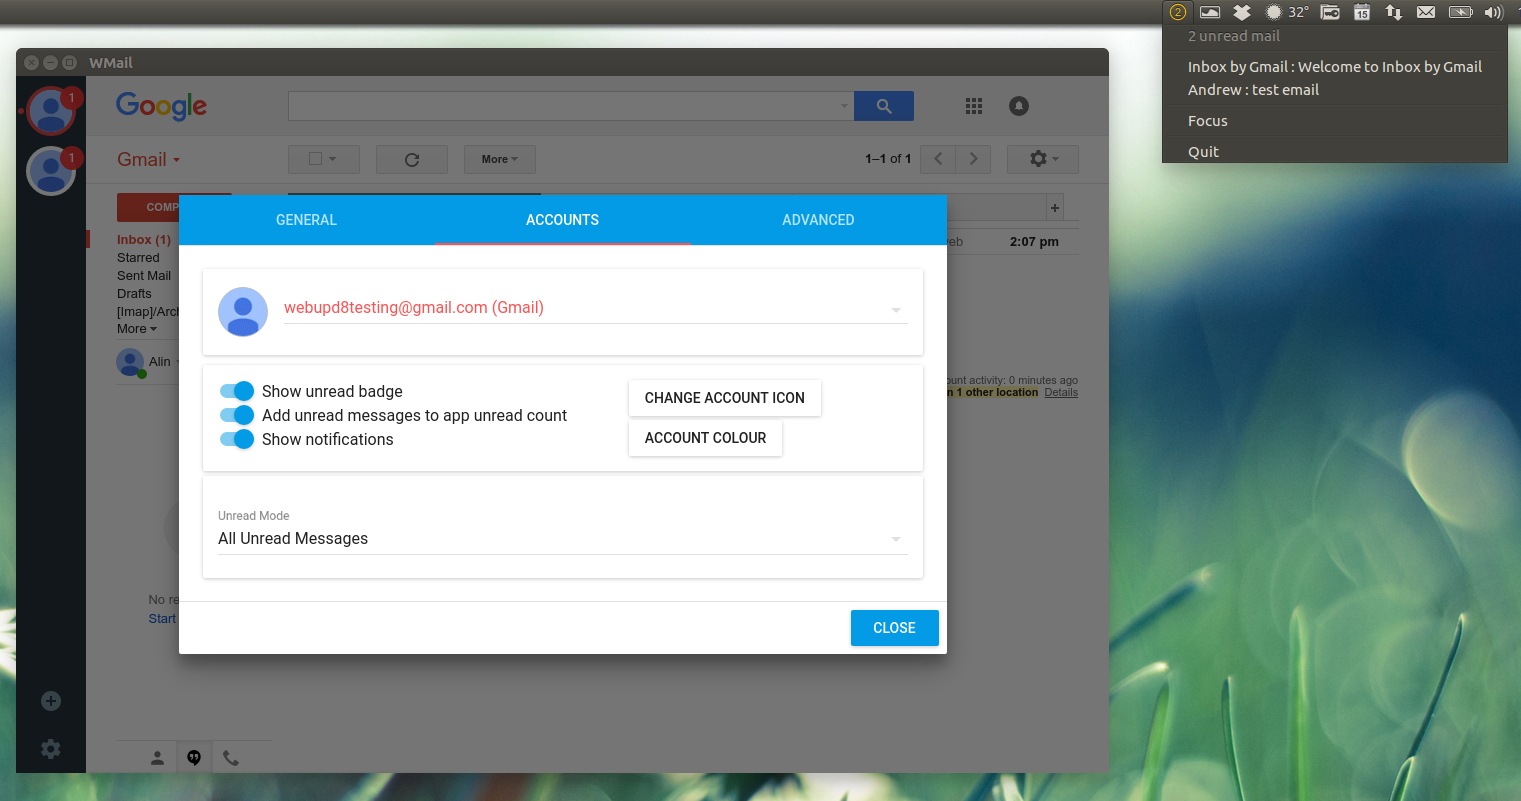 Wmail Is A Nice Desktop App For Gmail And Google Inbox With Multi ...